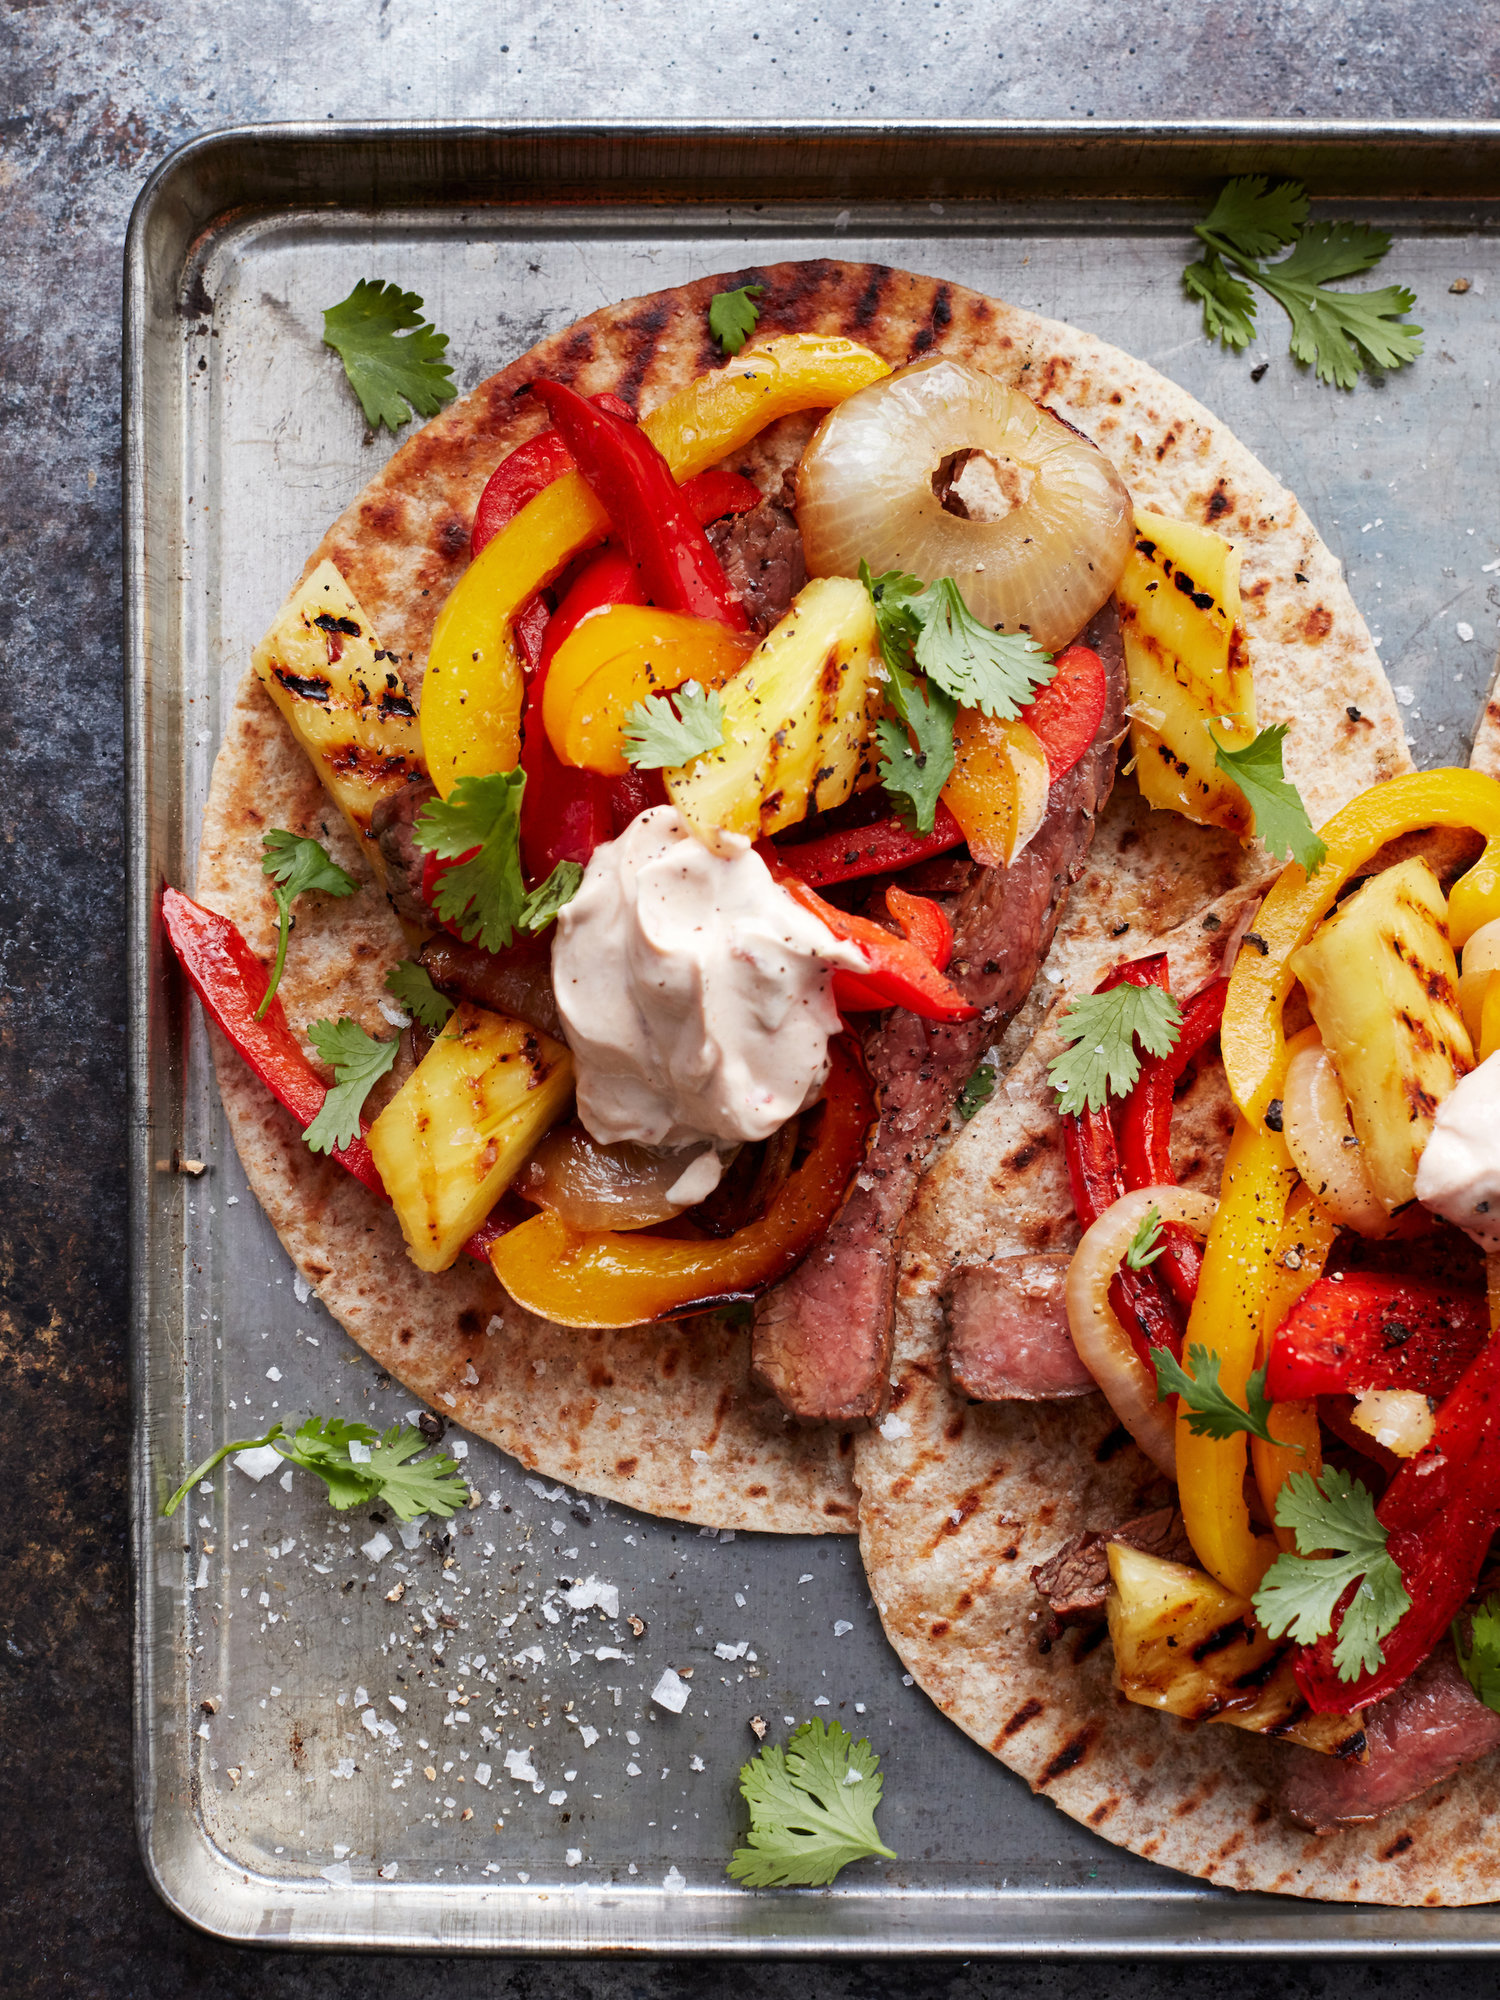 20160719_DrJulia_Steak-Fajitas017.jpg